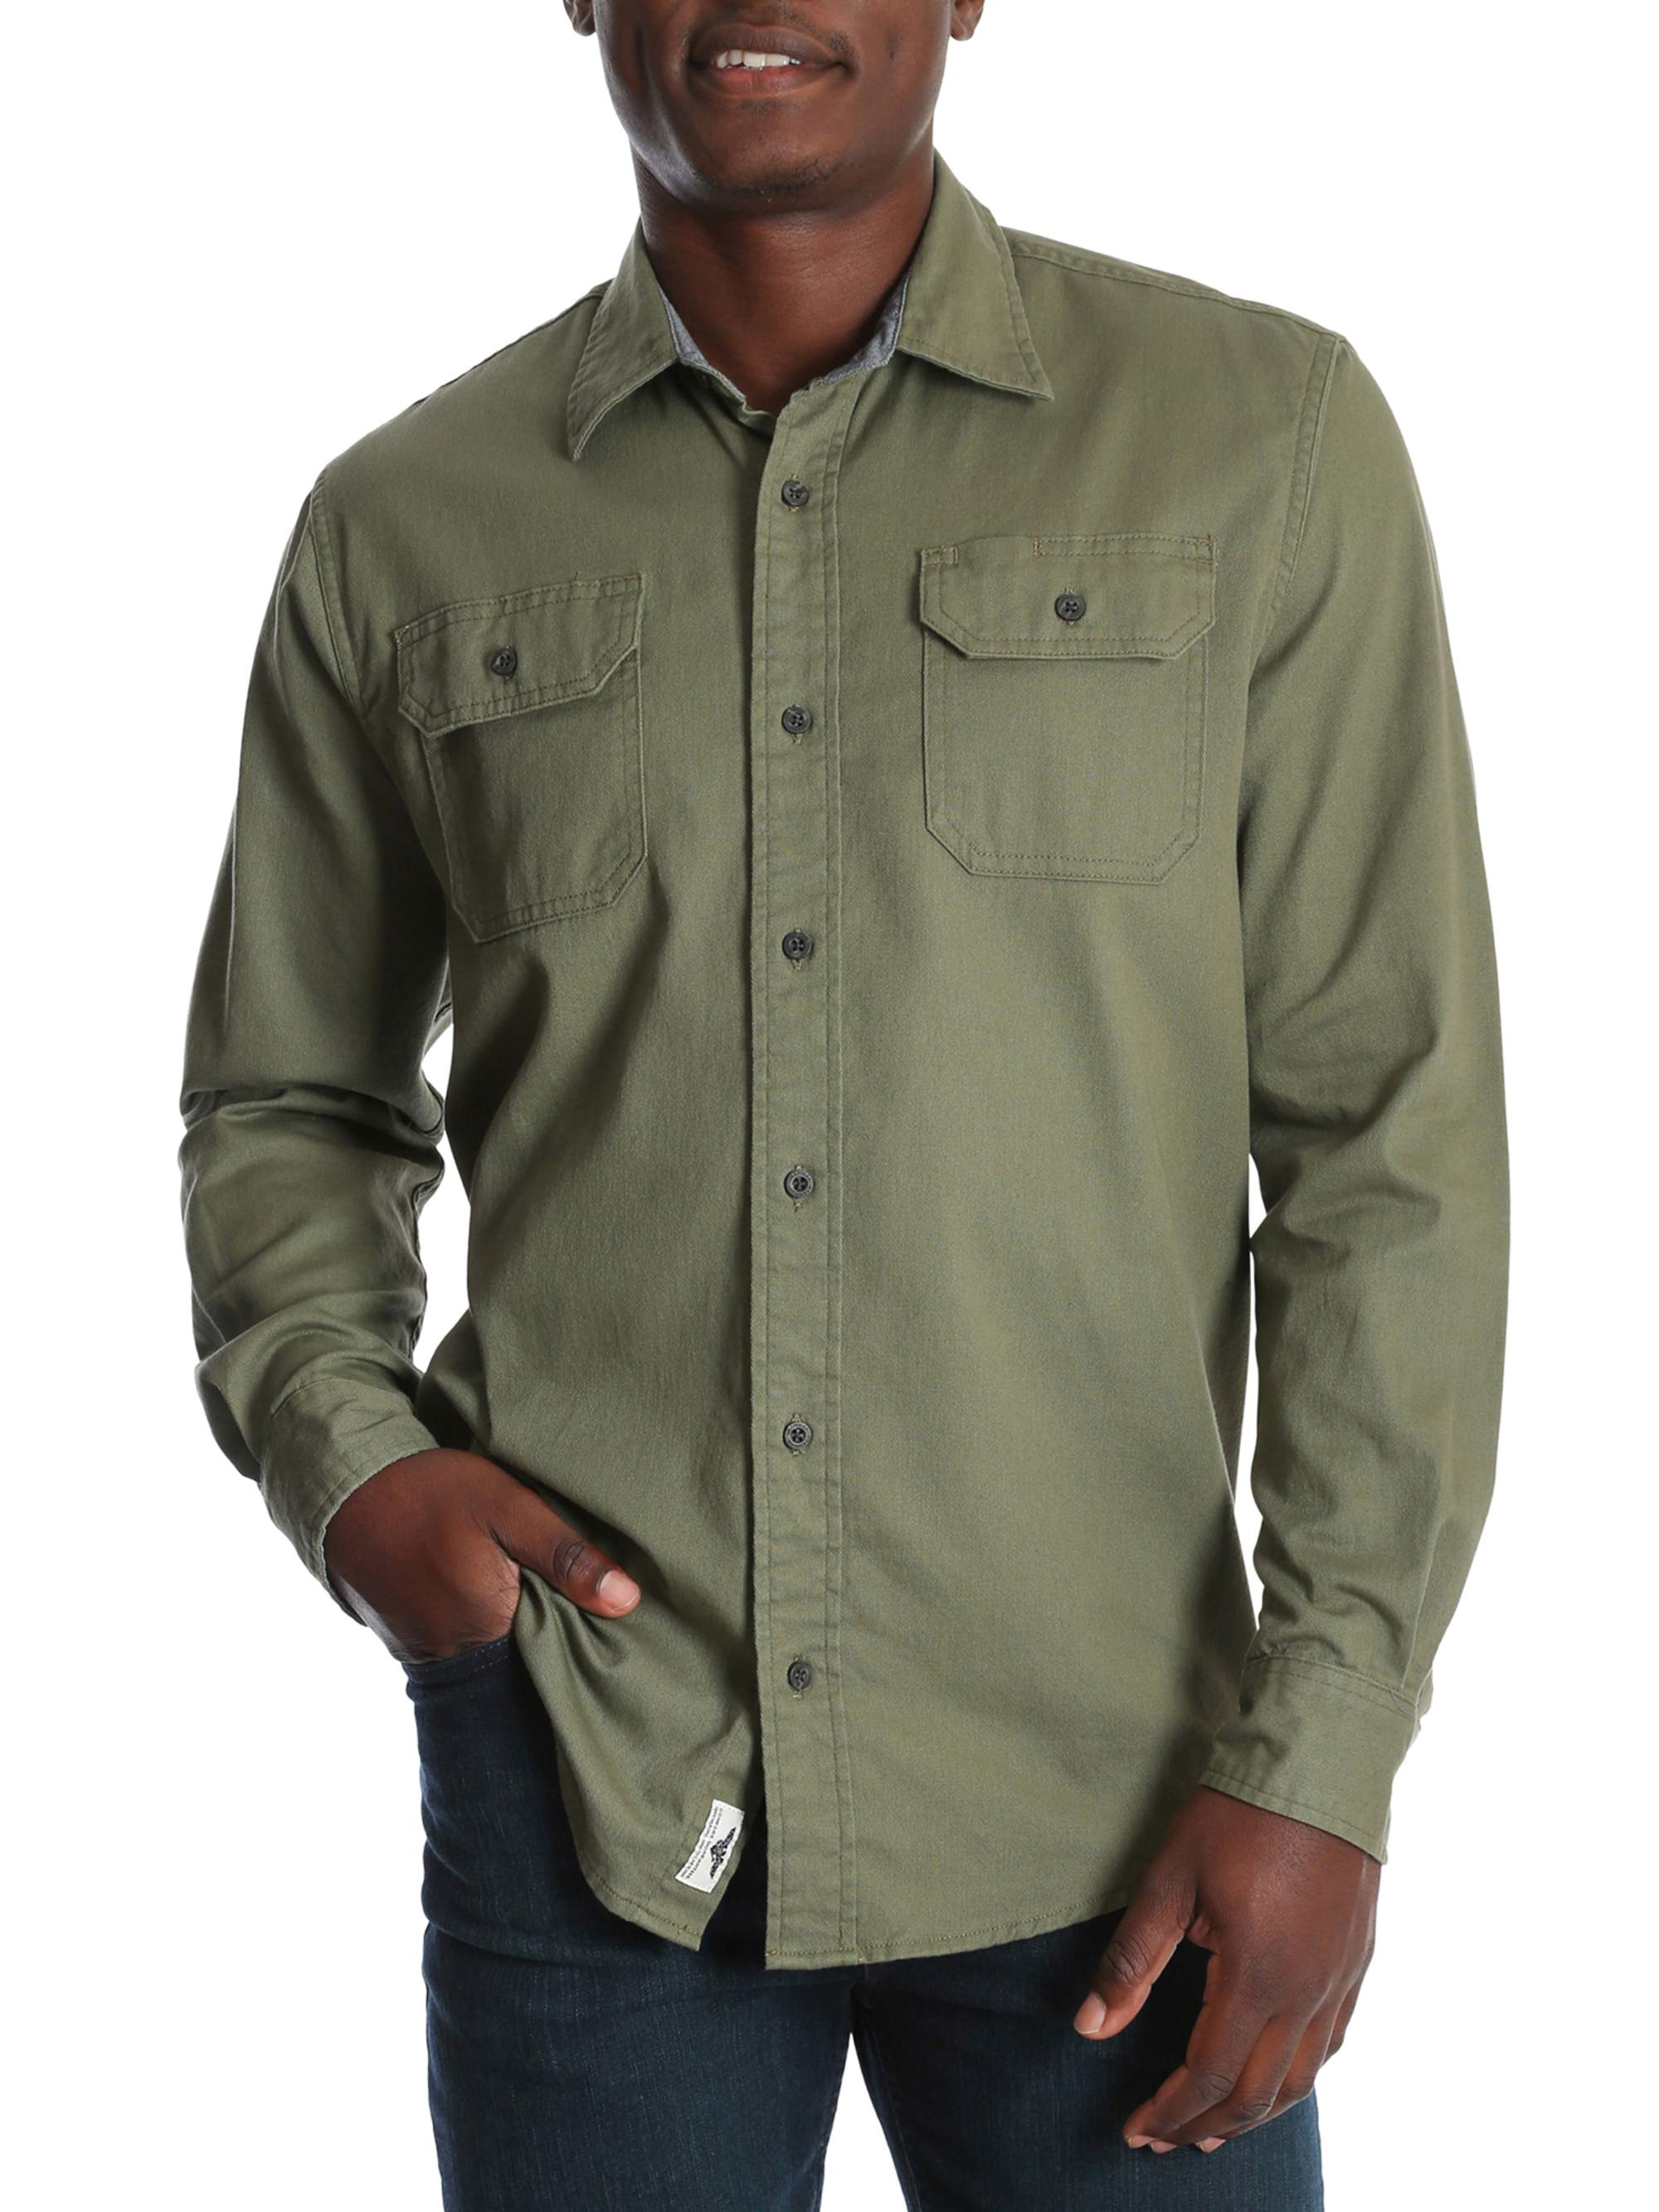 Men's and Big & Tall Long Sleeve Stretch Twill Shirt, up to...